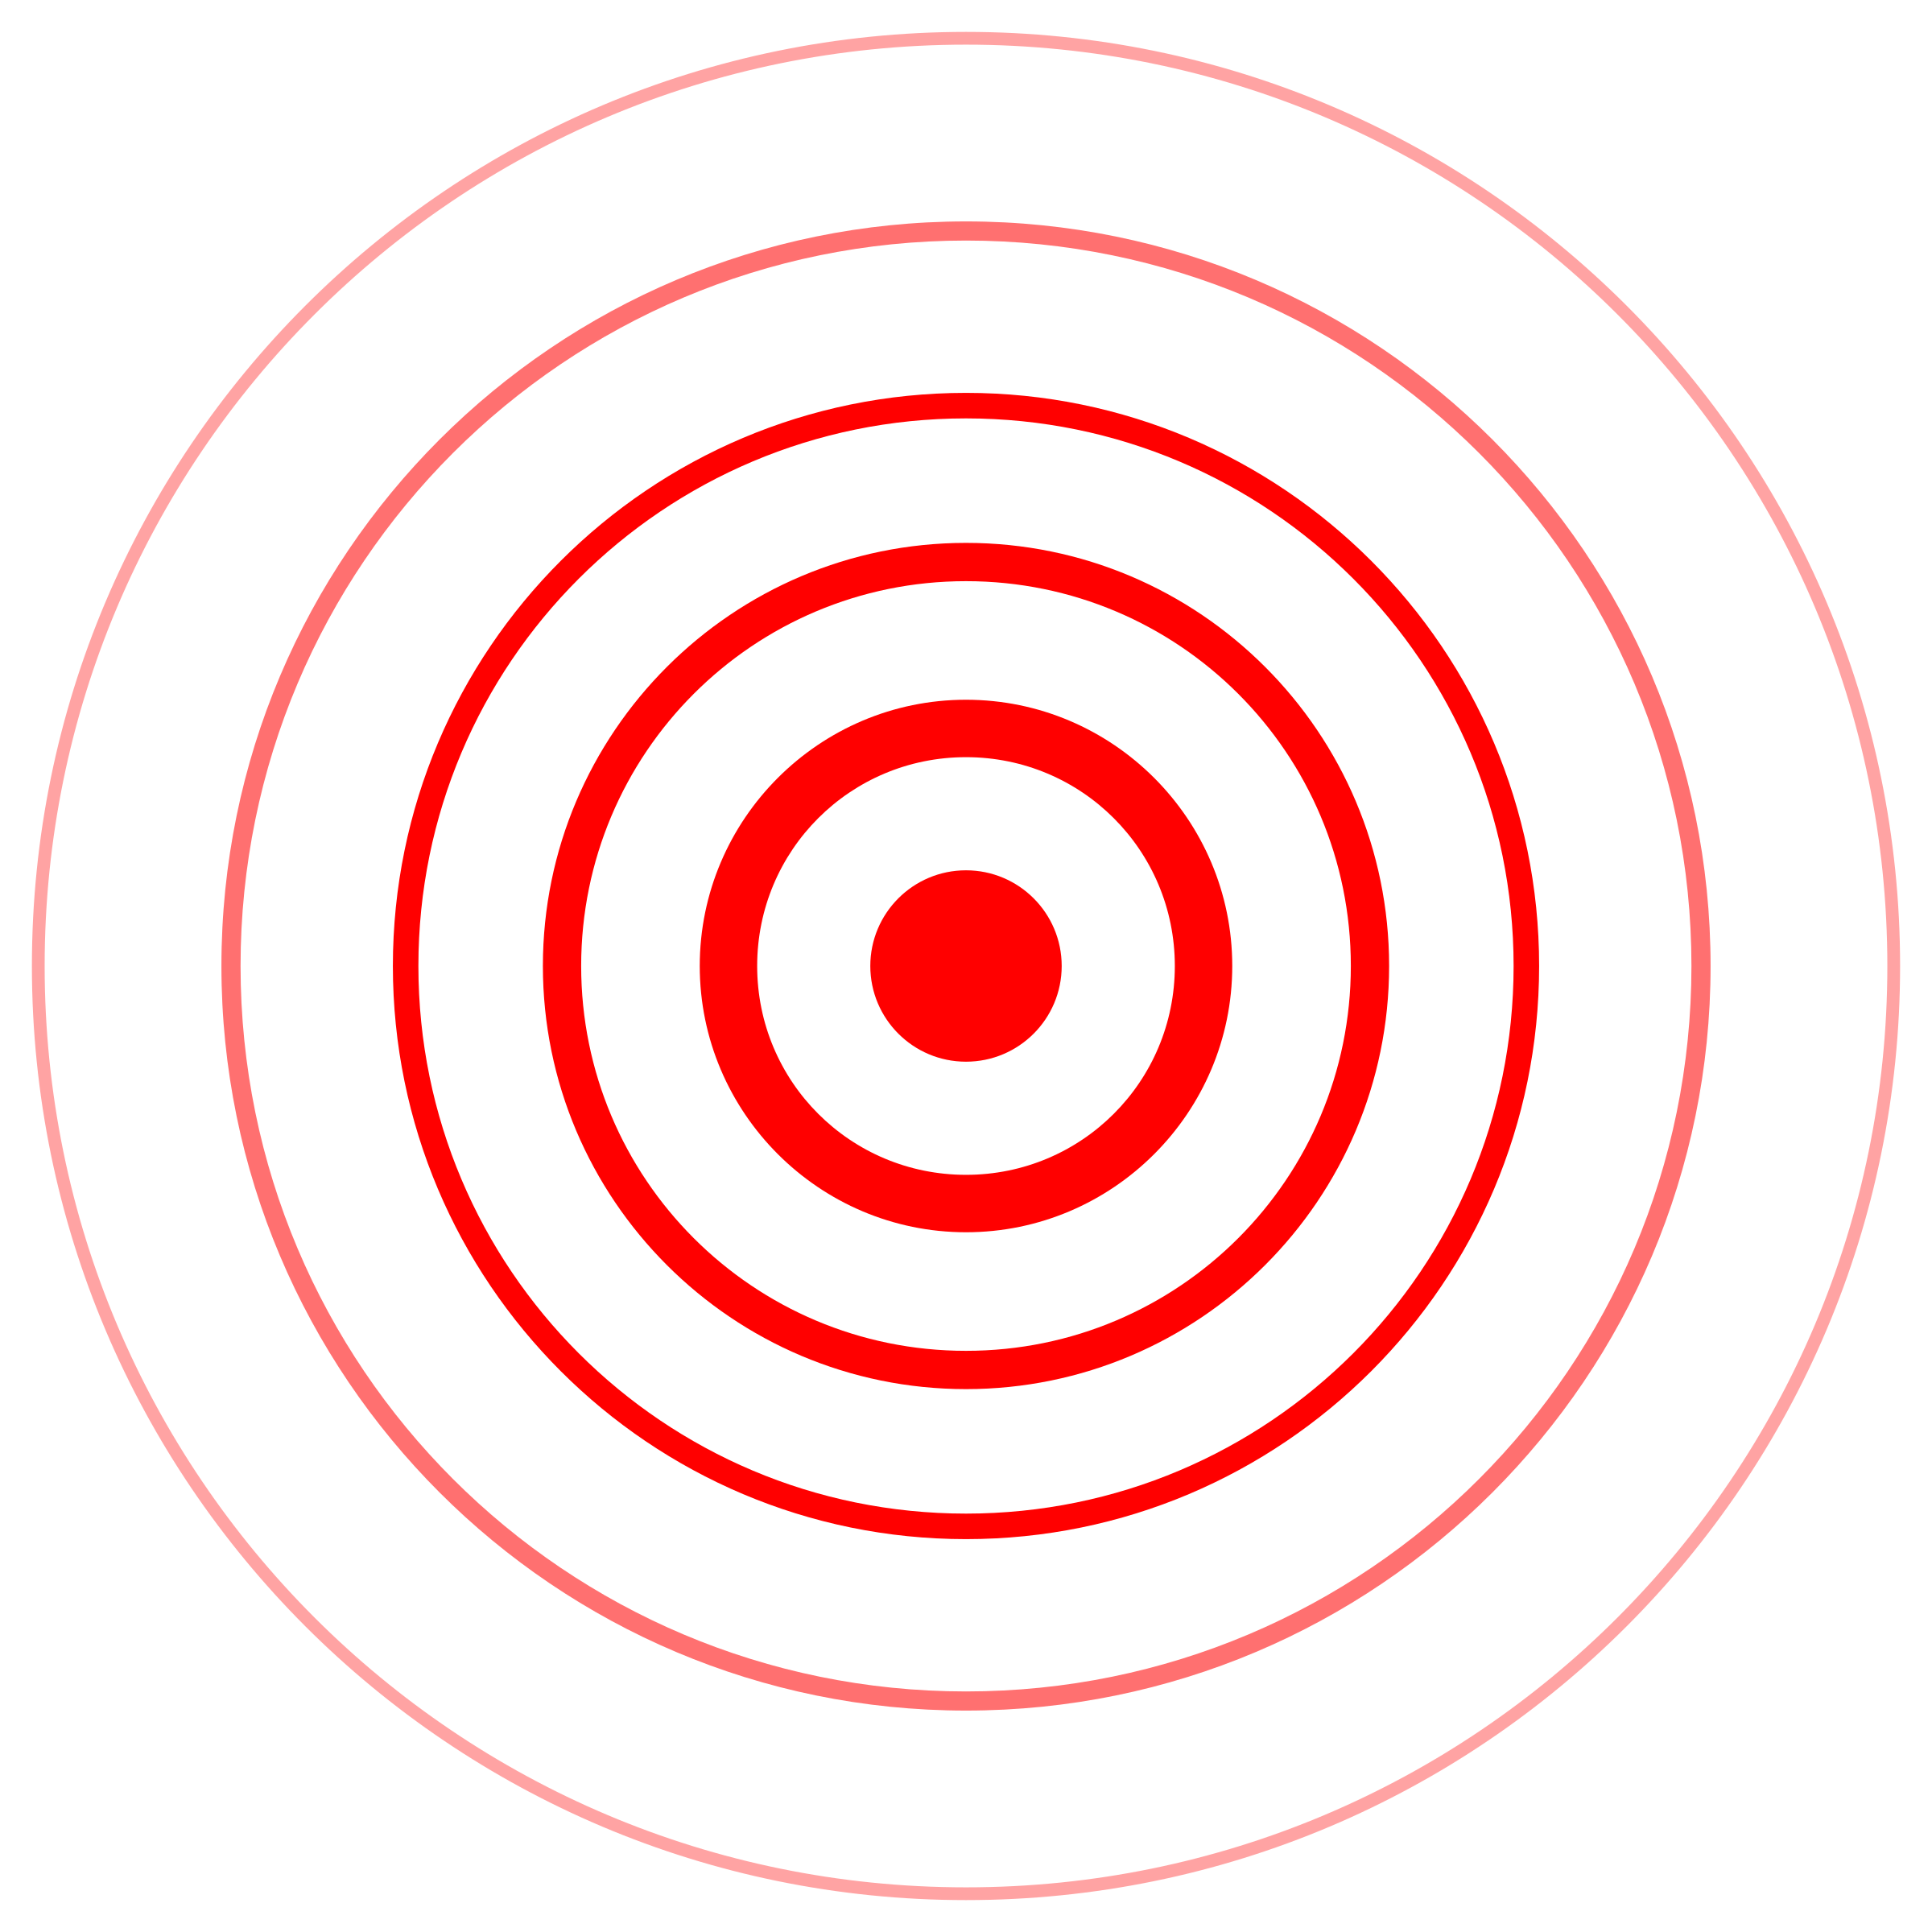 earthquake symbol huge. Vortex vector black and white png freeuse library